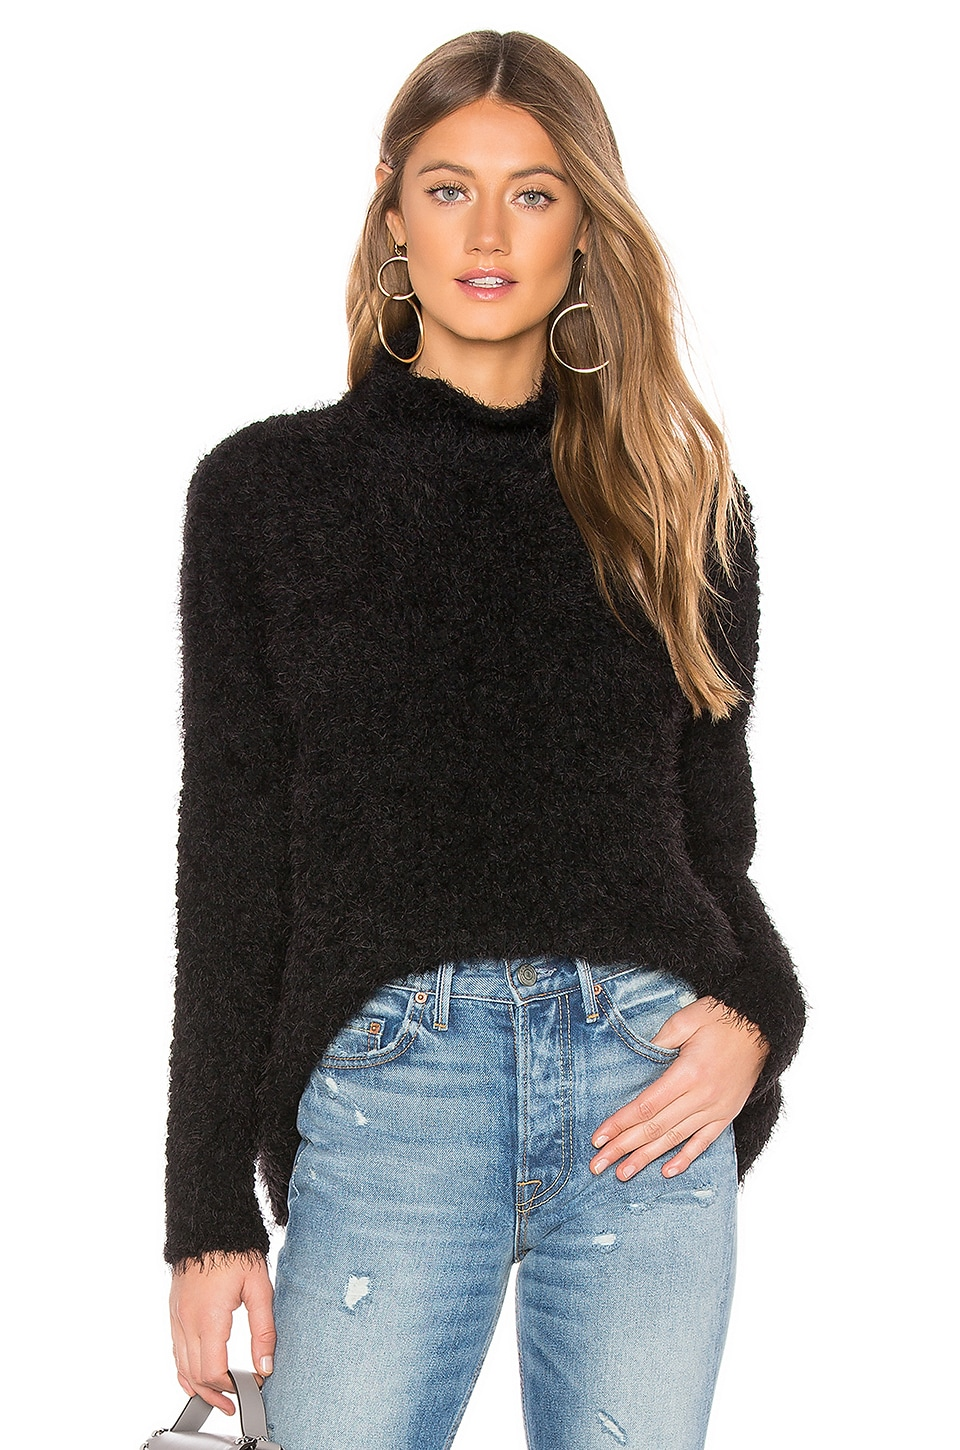 CALLAHAN Aida Sweater in Black